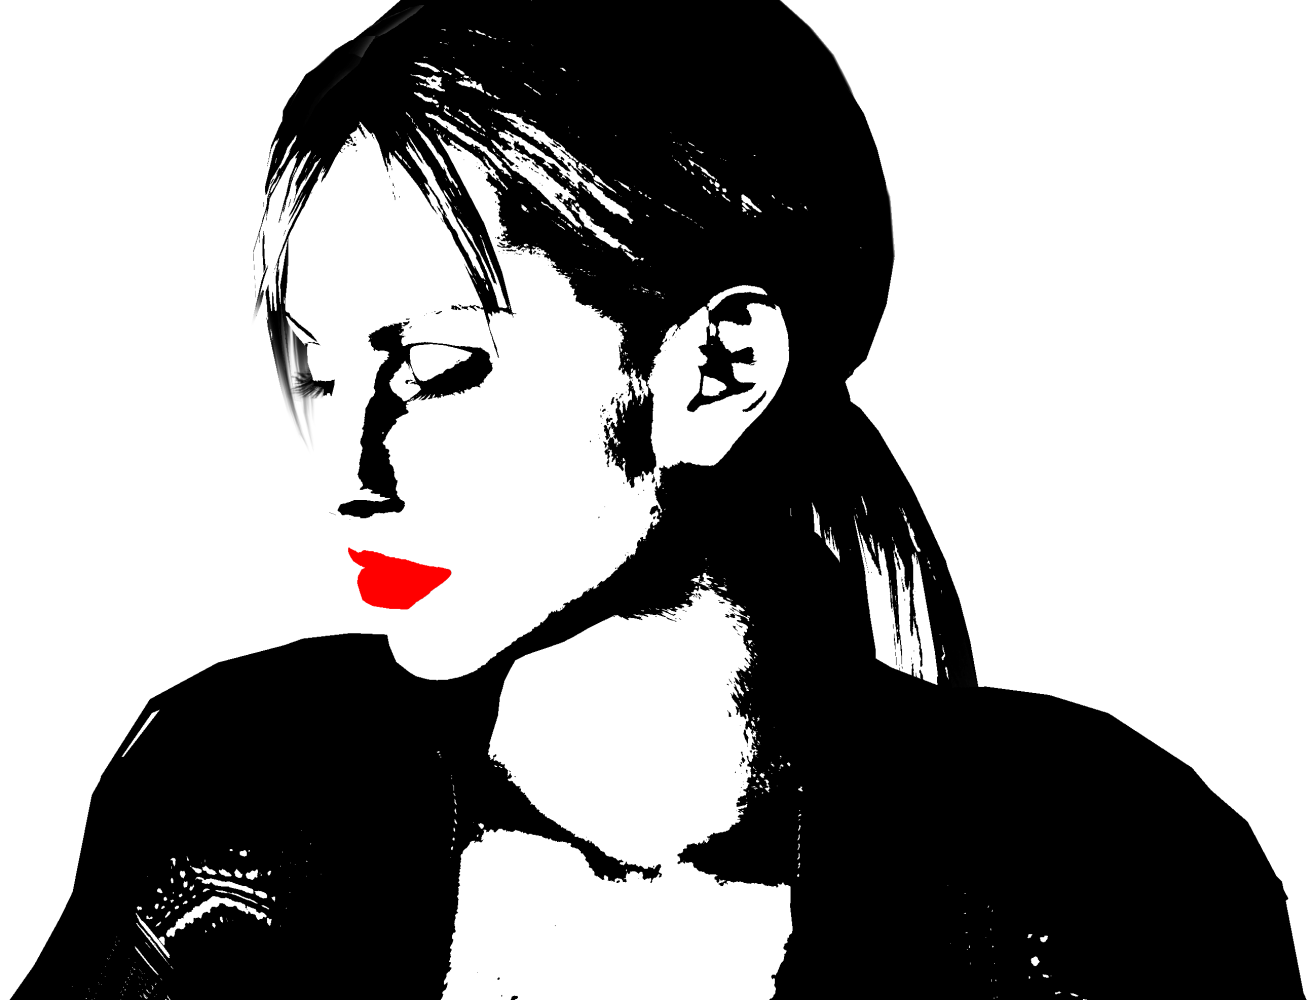 [OFFLINE] Ebony & Ivory Dmc Red_Lips_Edited